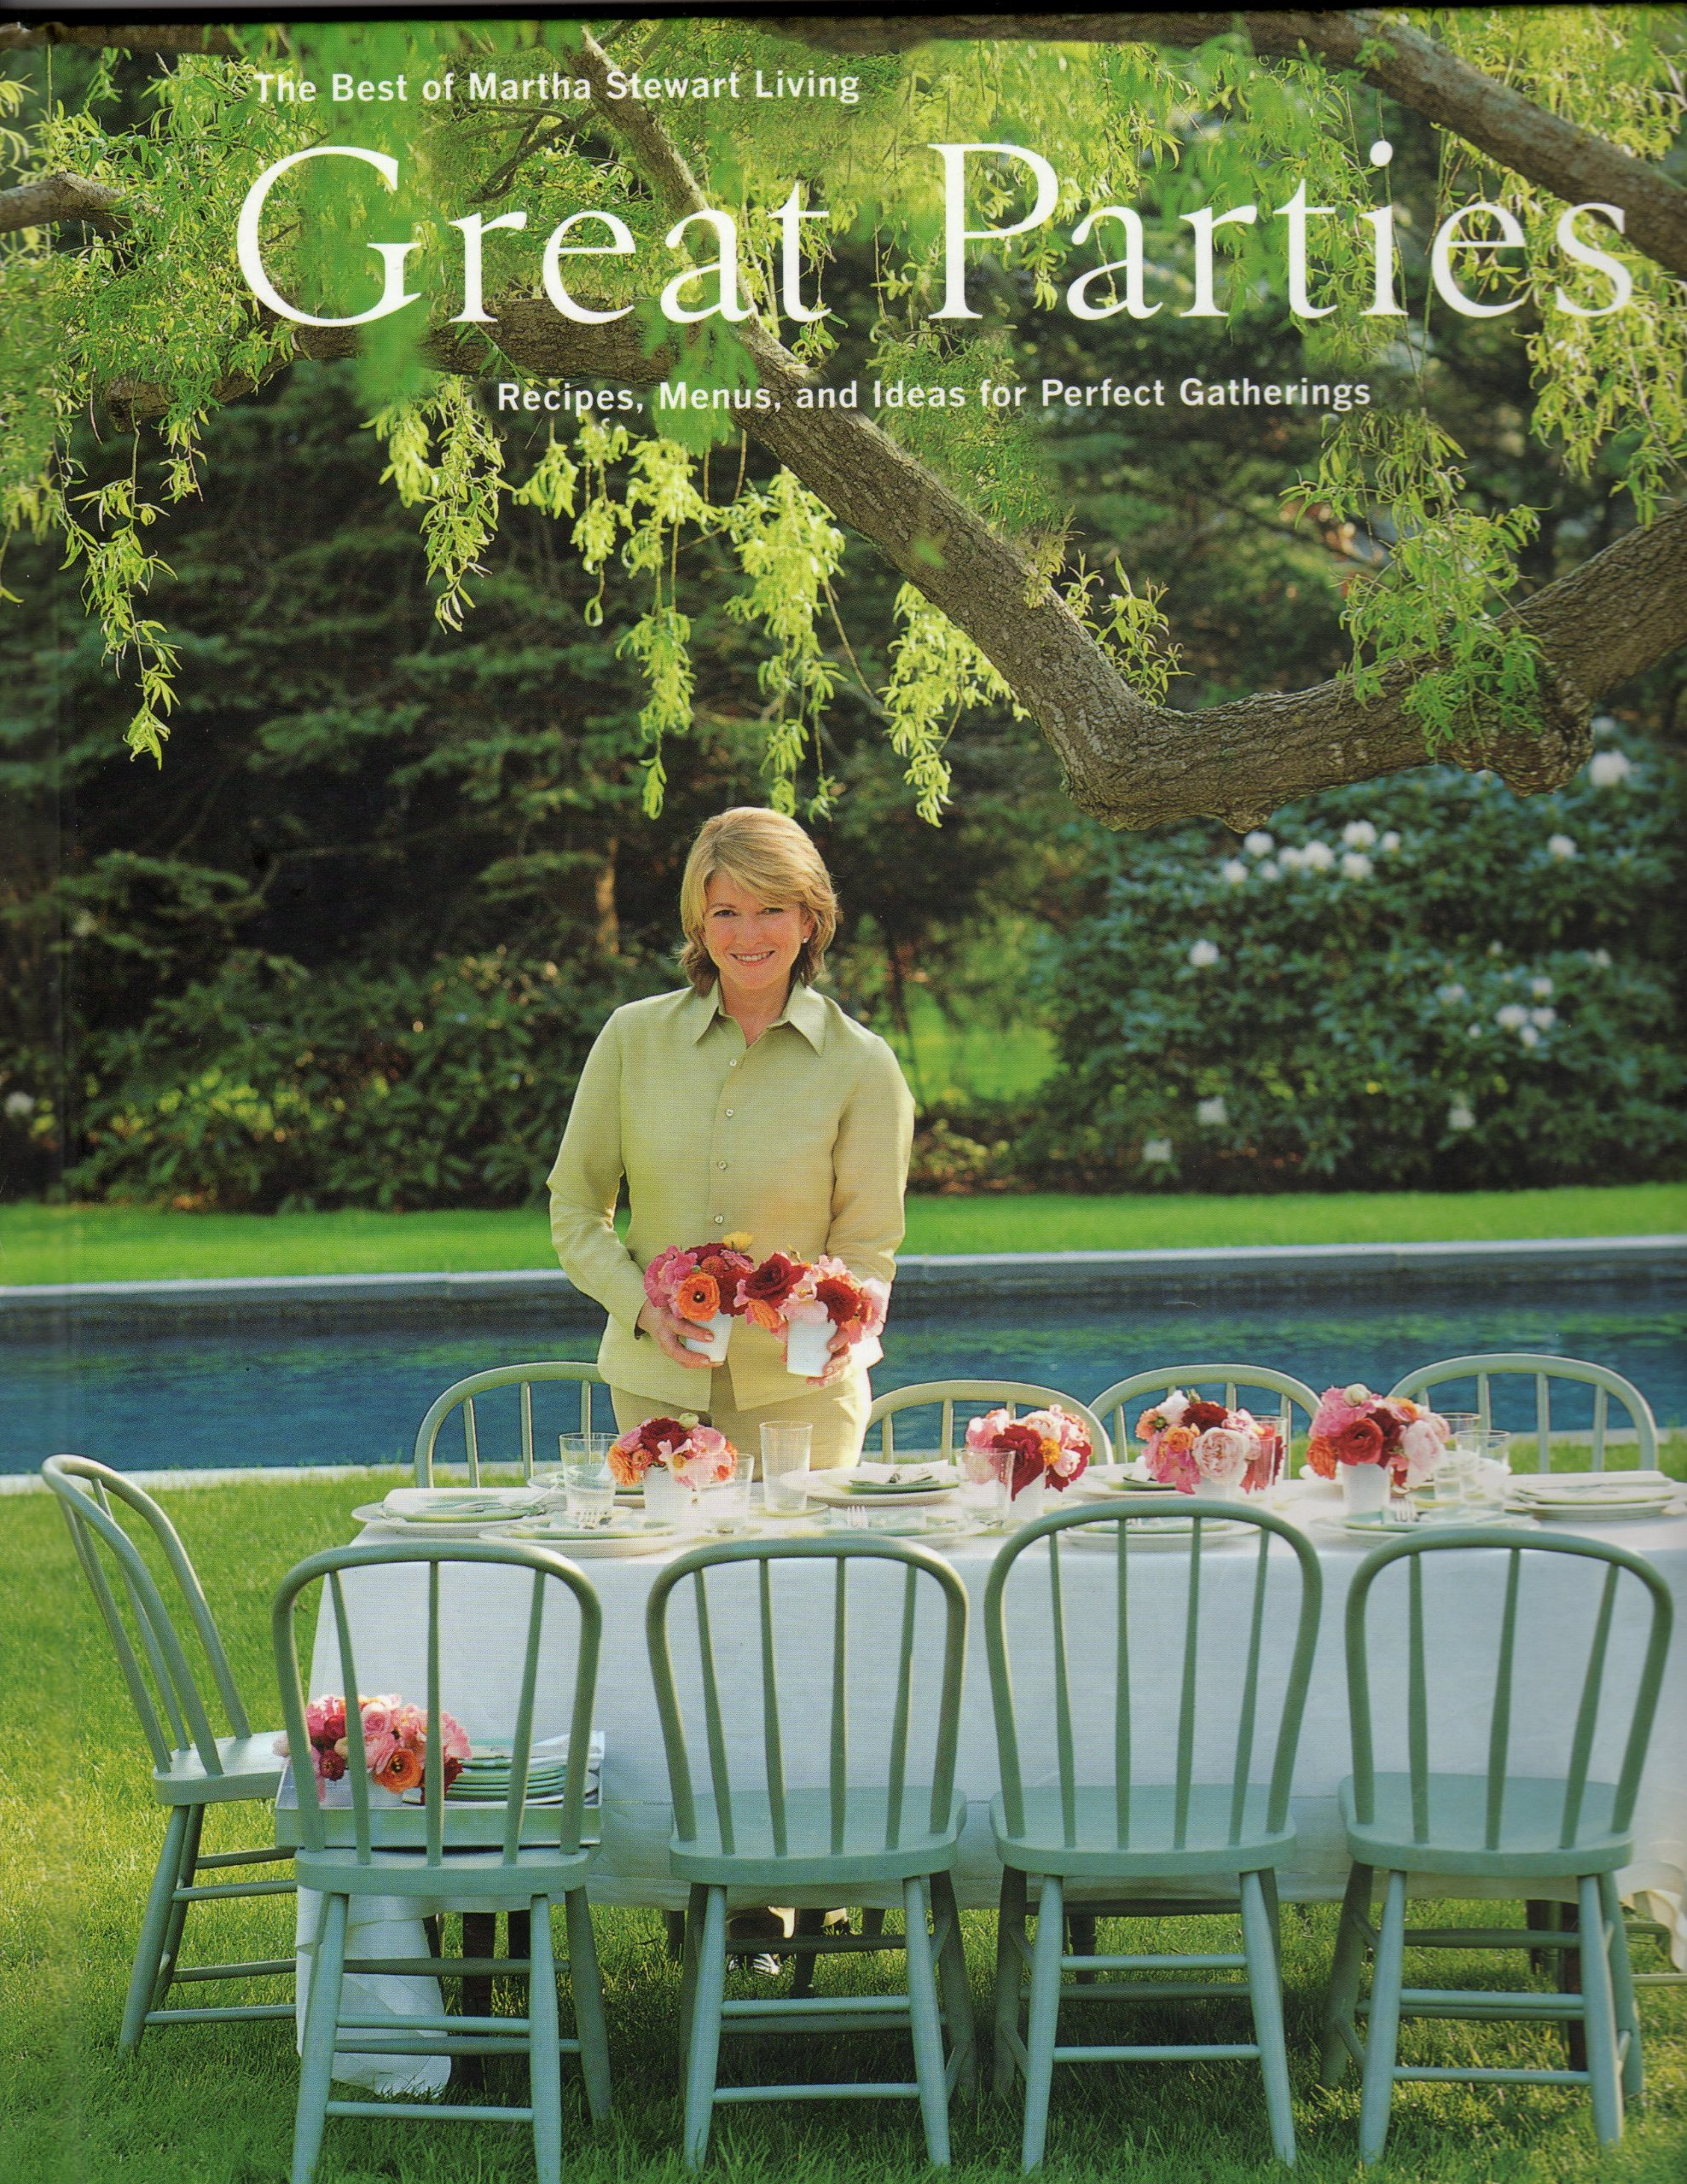 A1pnxcgHoeL - Great parties : recipes menus and ideas for perfect gatherings : the best of Martha Stewart living